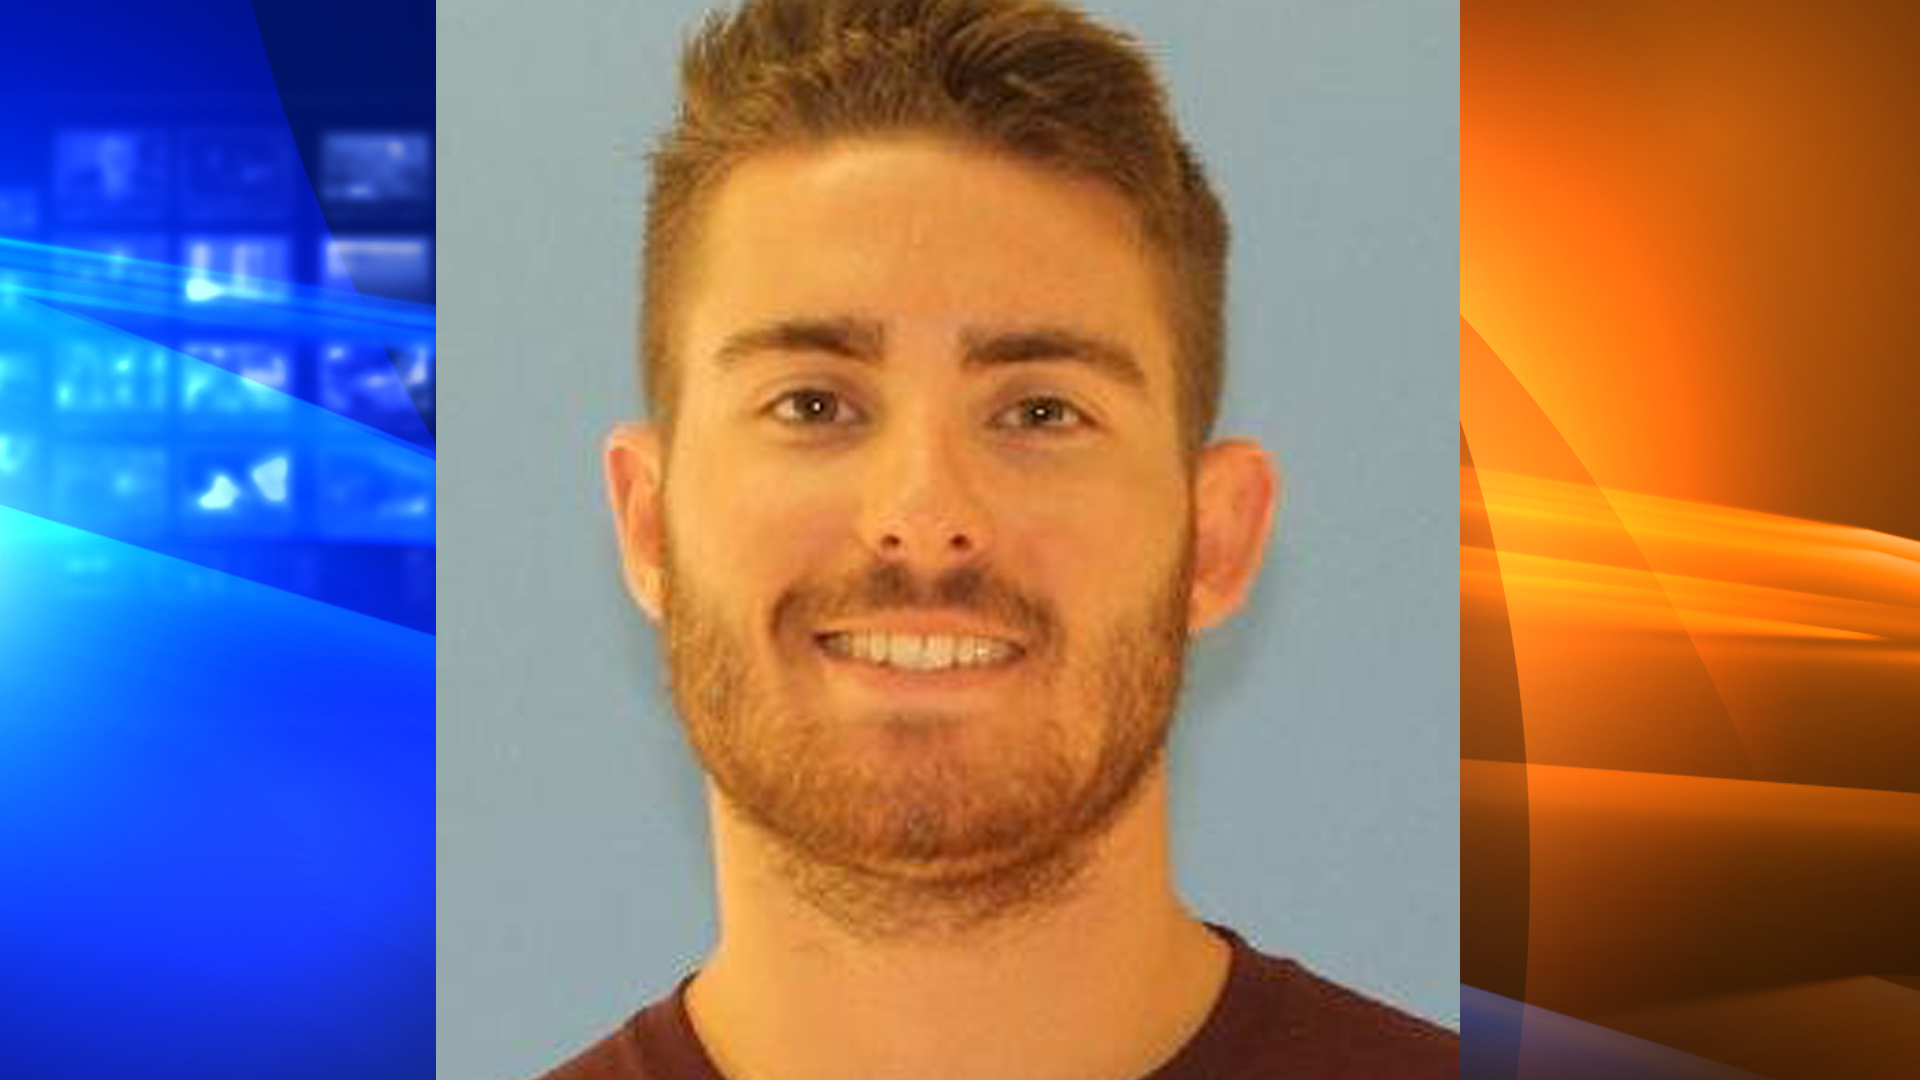 Andrew Coffey died while attending a fraternity party at FSU. (Credit: Florida State University)